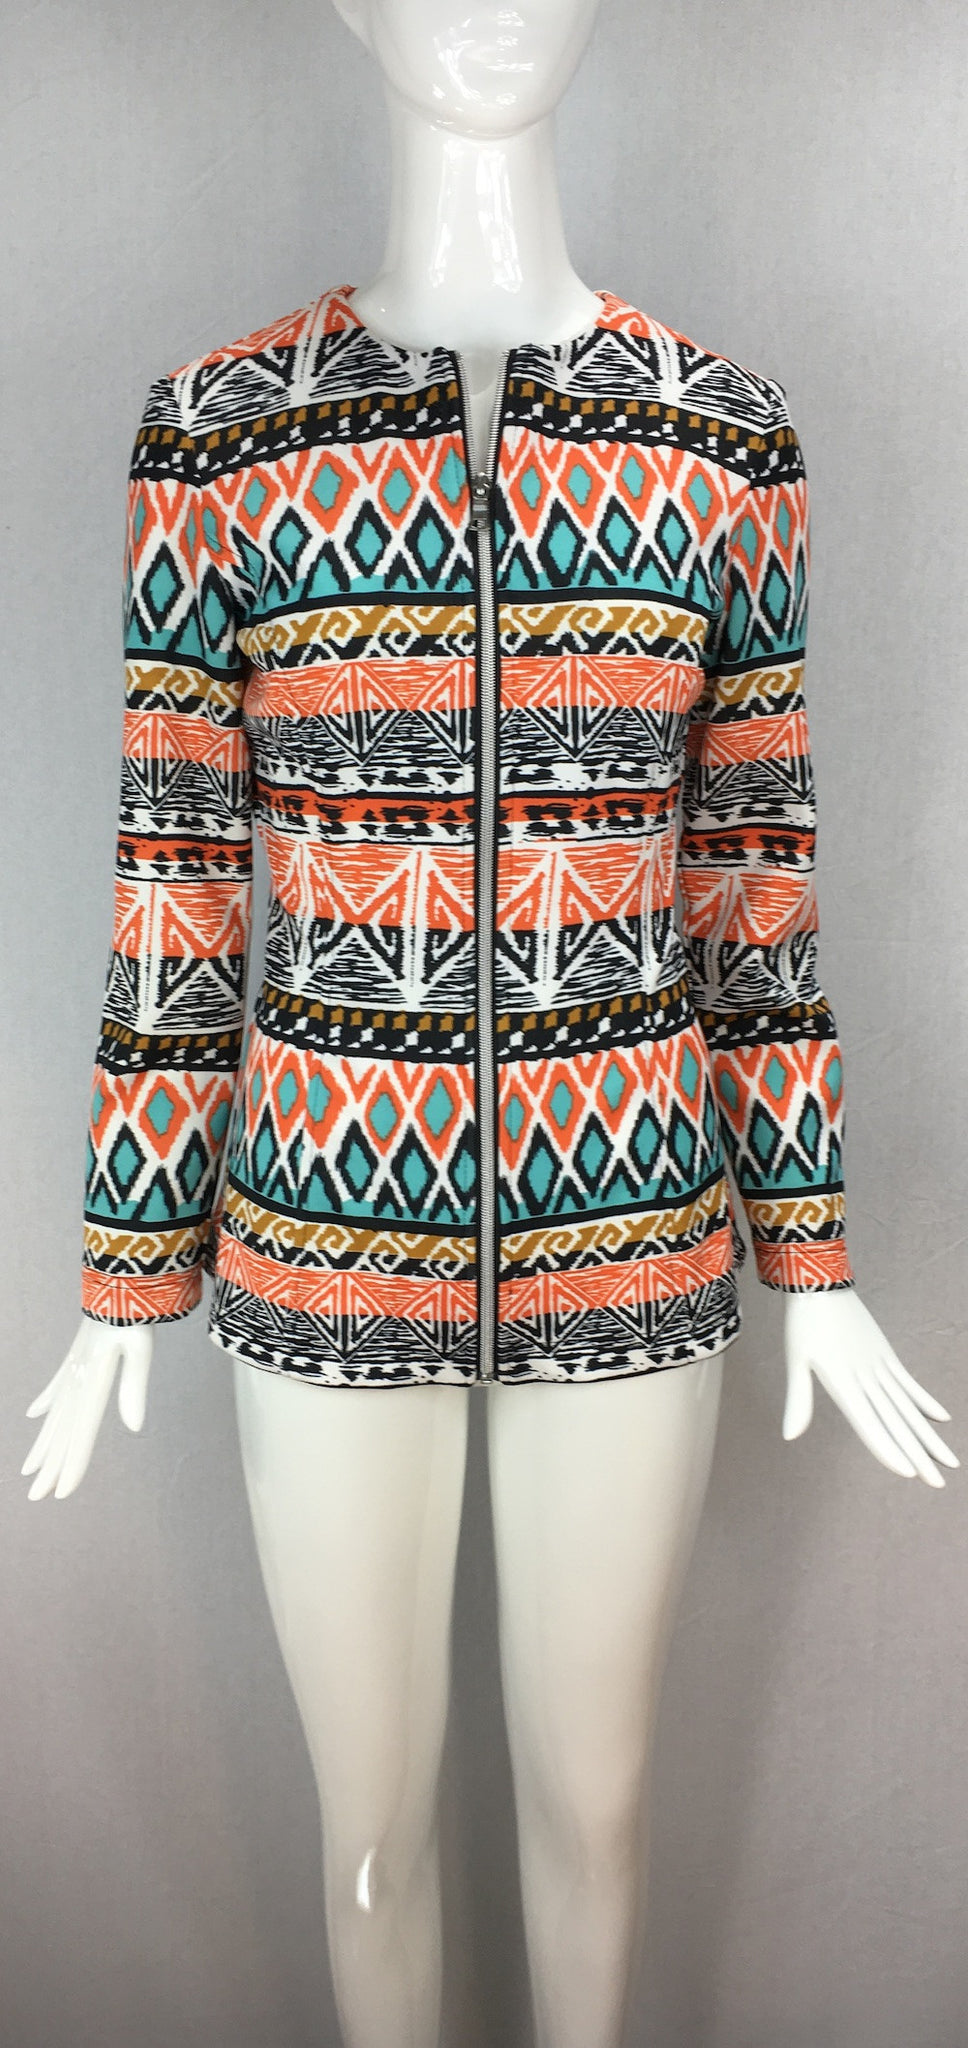 Janet Deleuse Designer Retro Tech Knit Jacket, SOLD OUT